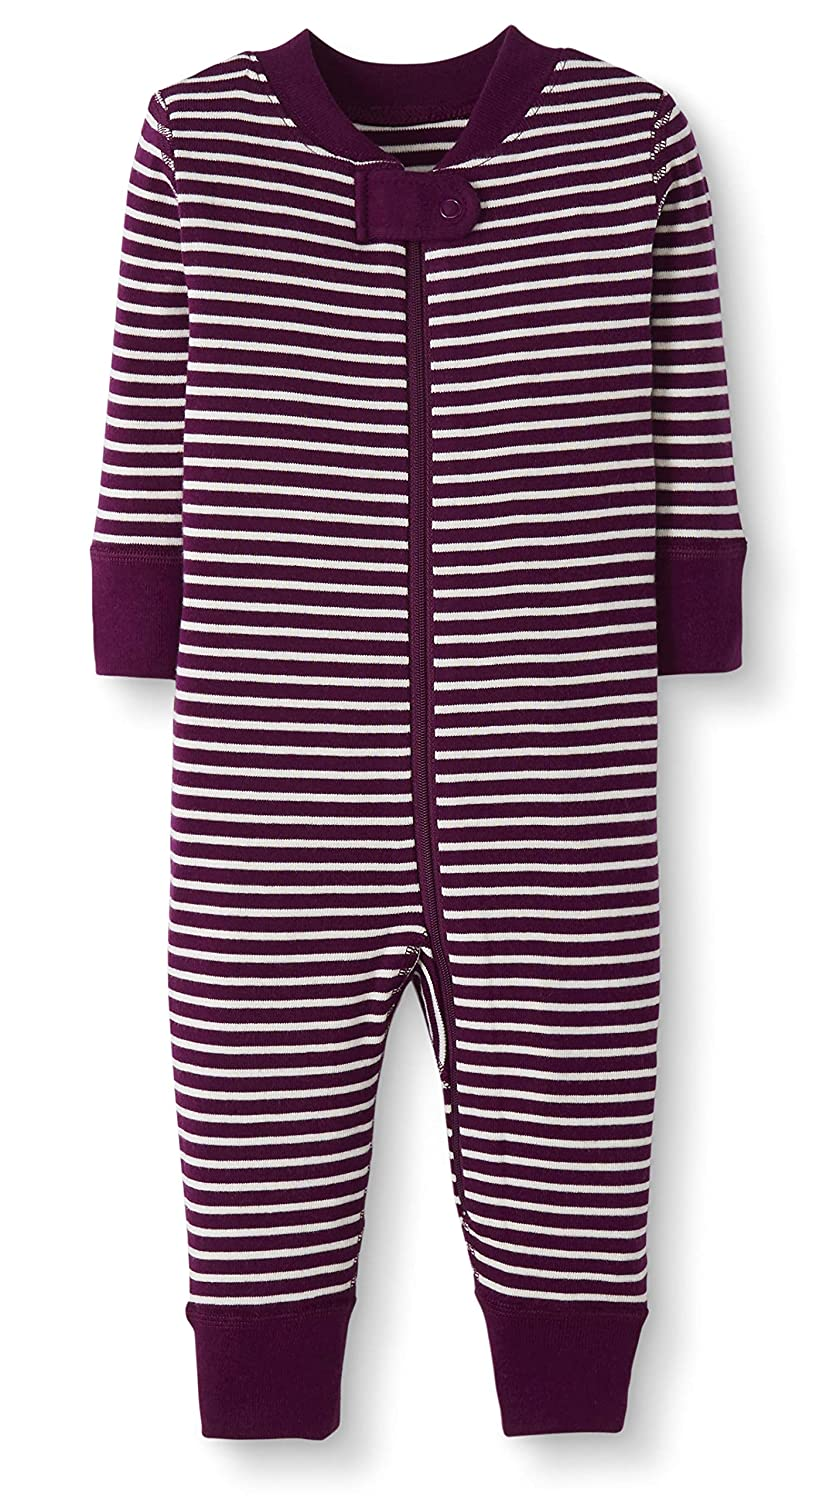 Moon and Back by Hanna Andersson Baby//Toddler One-Piece Organic Cotton Footless Pajamas